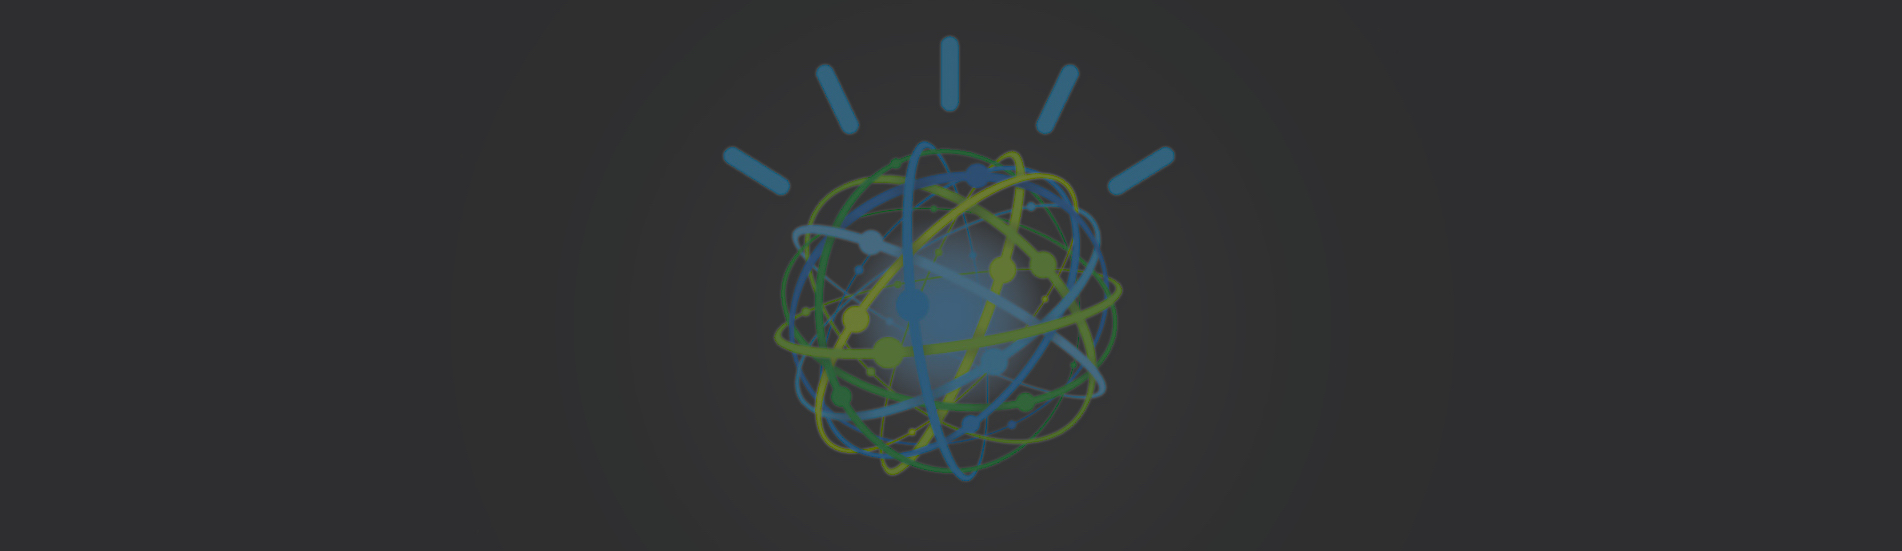 IBM Watson API: Artificial intelligence as a Service